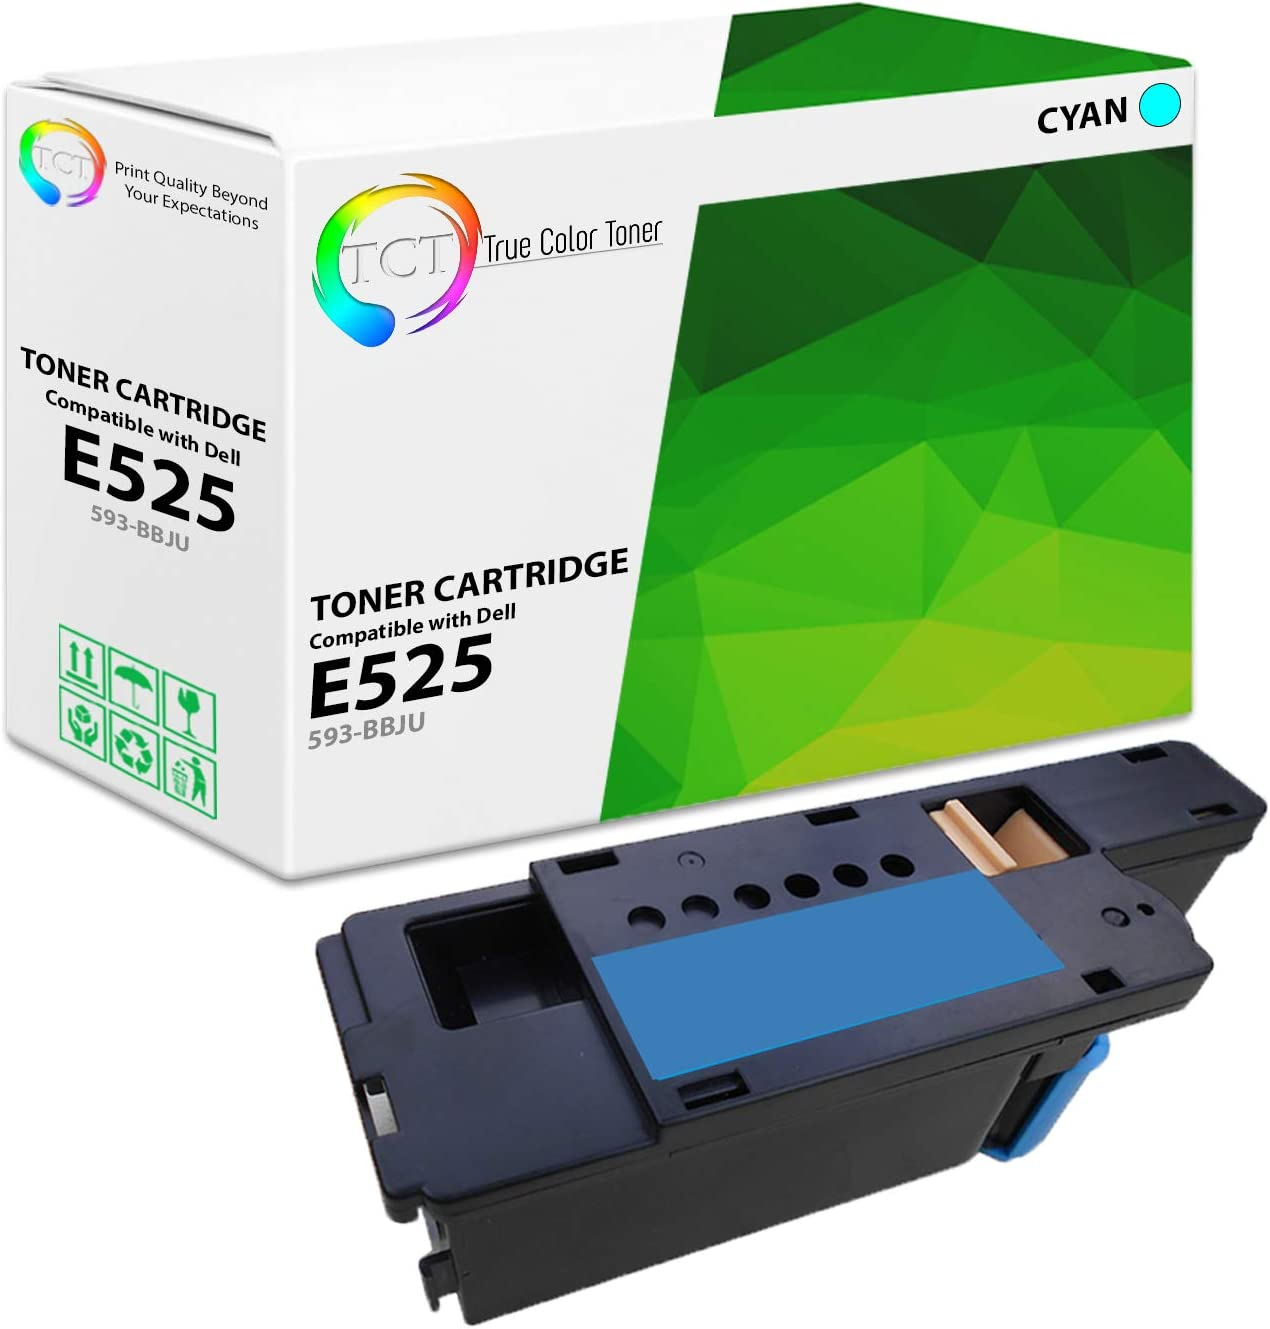 TCT Premium Compatible High Yield Toner Cartridge Replacement for Dell 593-BBJU Cyan Works with Dell E525W MFP Printers (1,400 Pages)